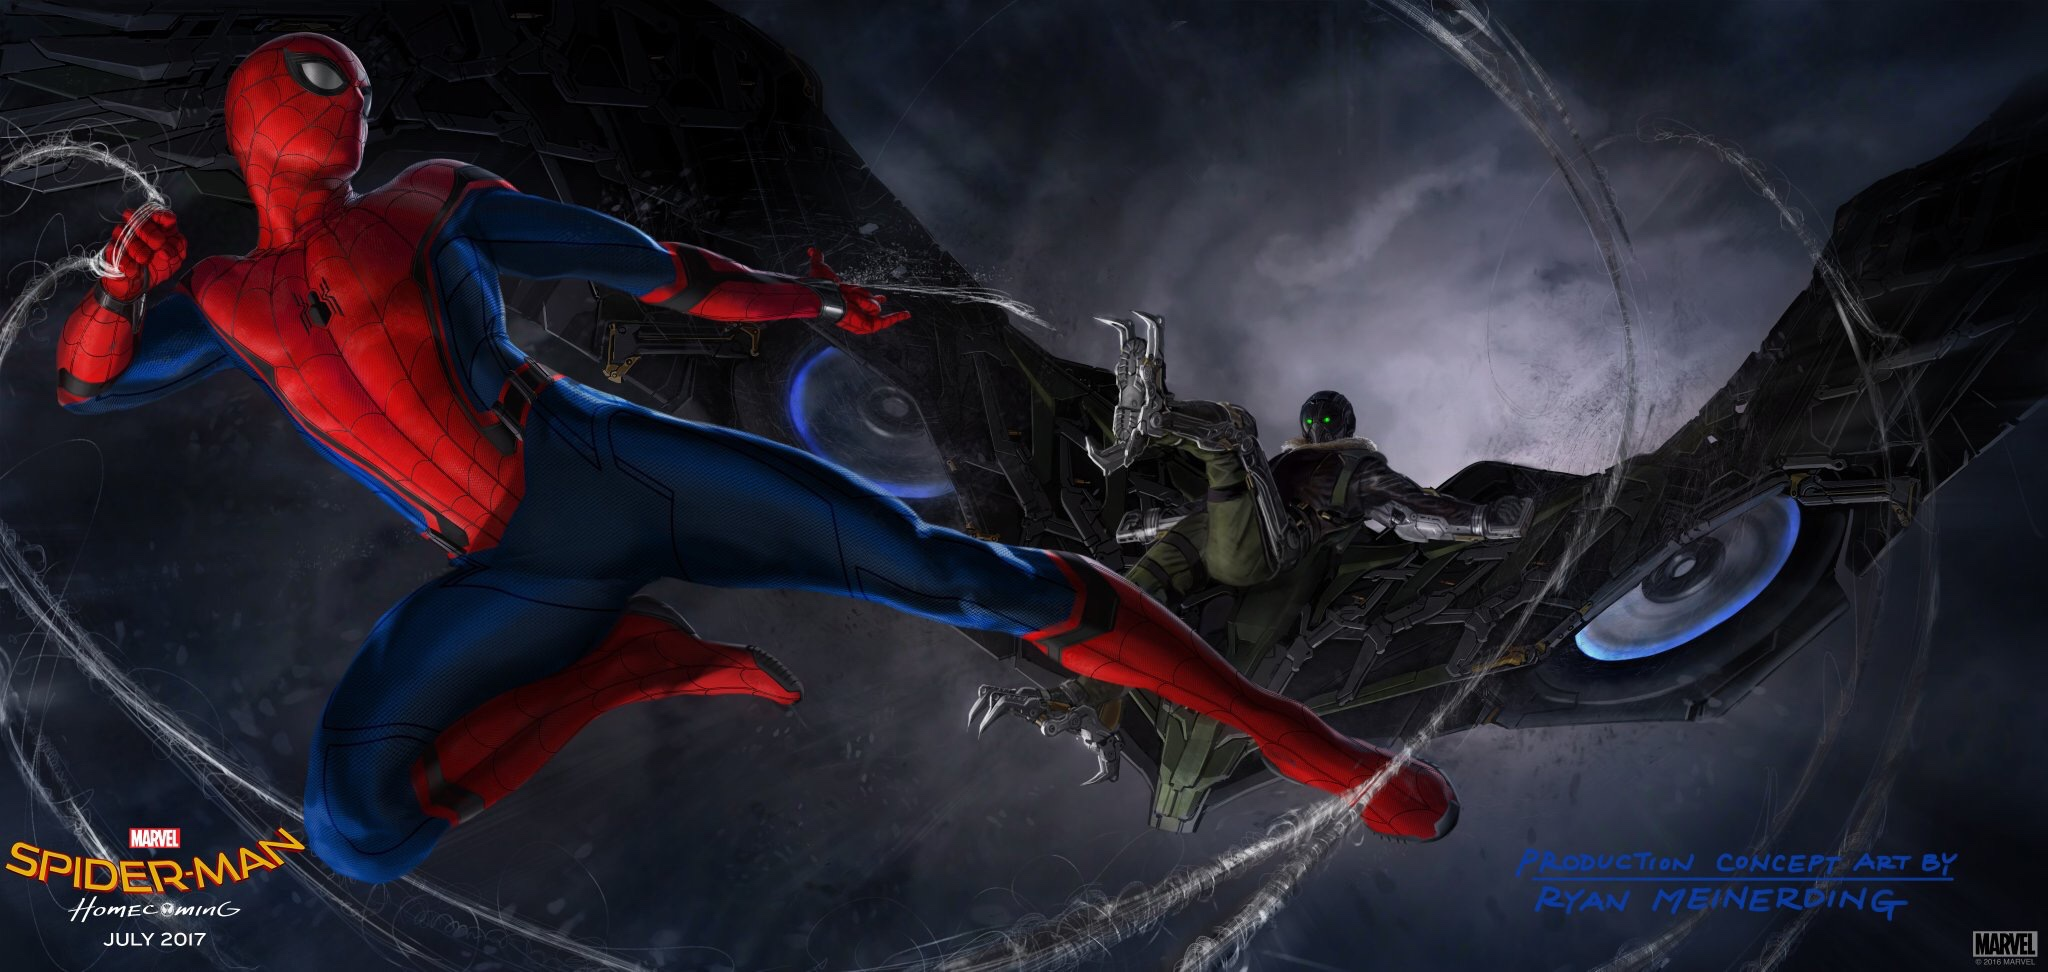 SDCC 2016 Spider Man Homecoming Footage Revealed Alongside New Concept Art